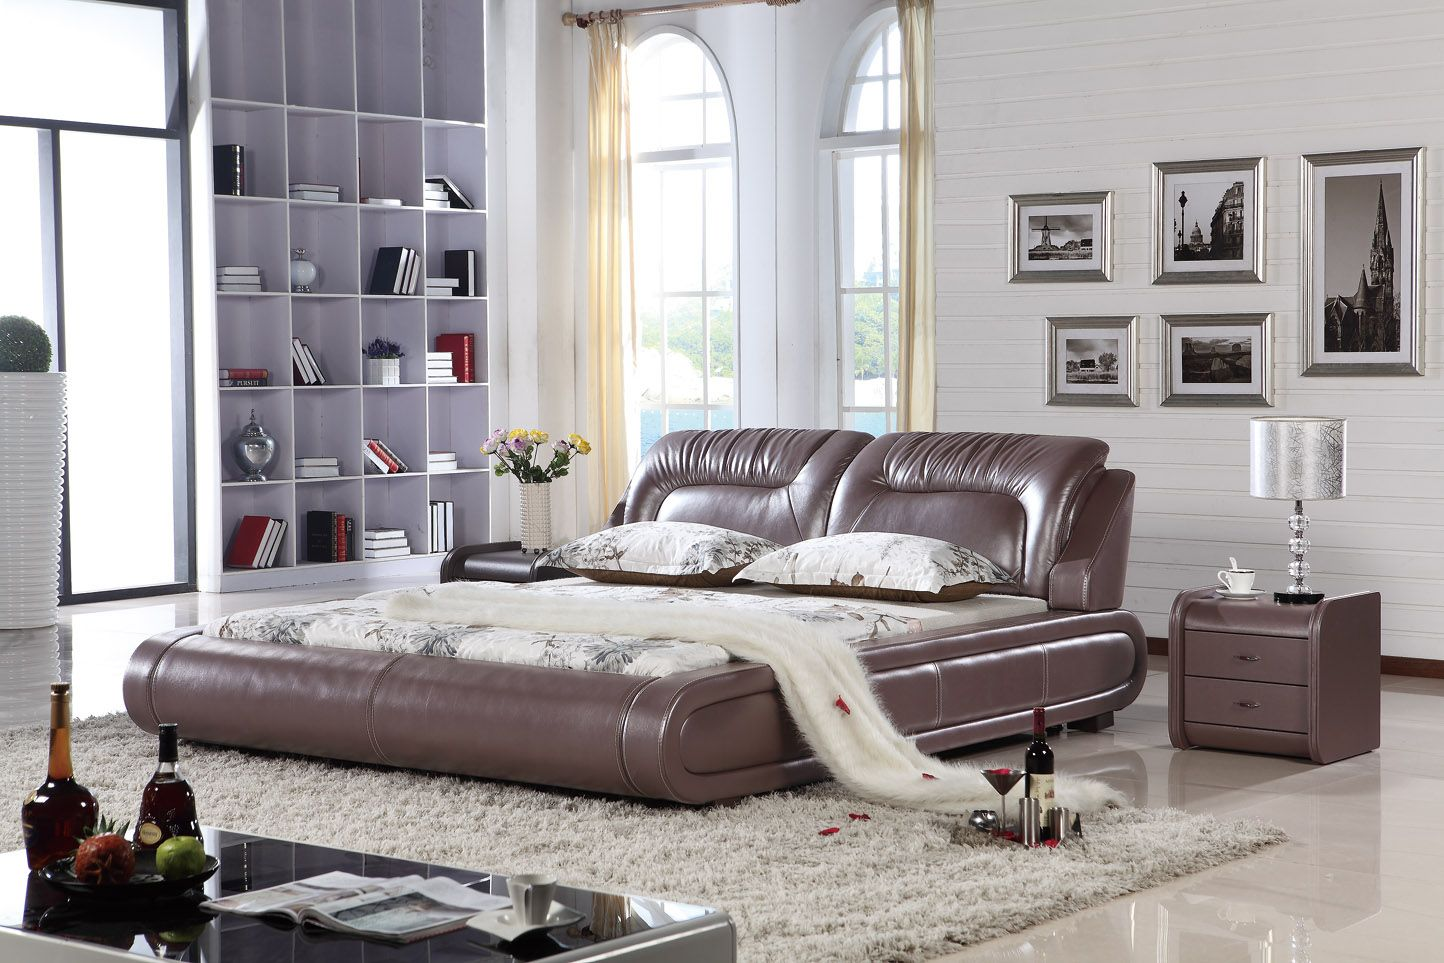 L H8048 340 Kingsize Bett Bed Factory Leather Camas King